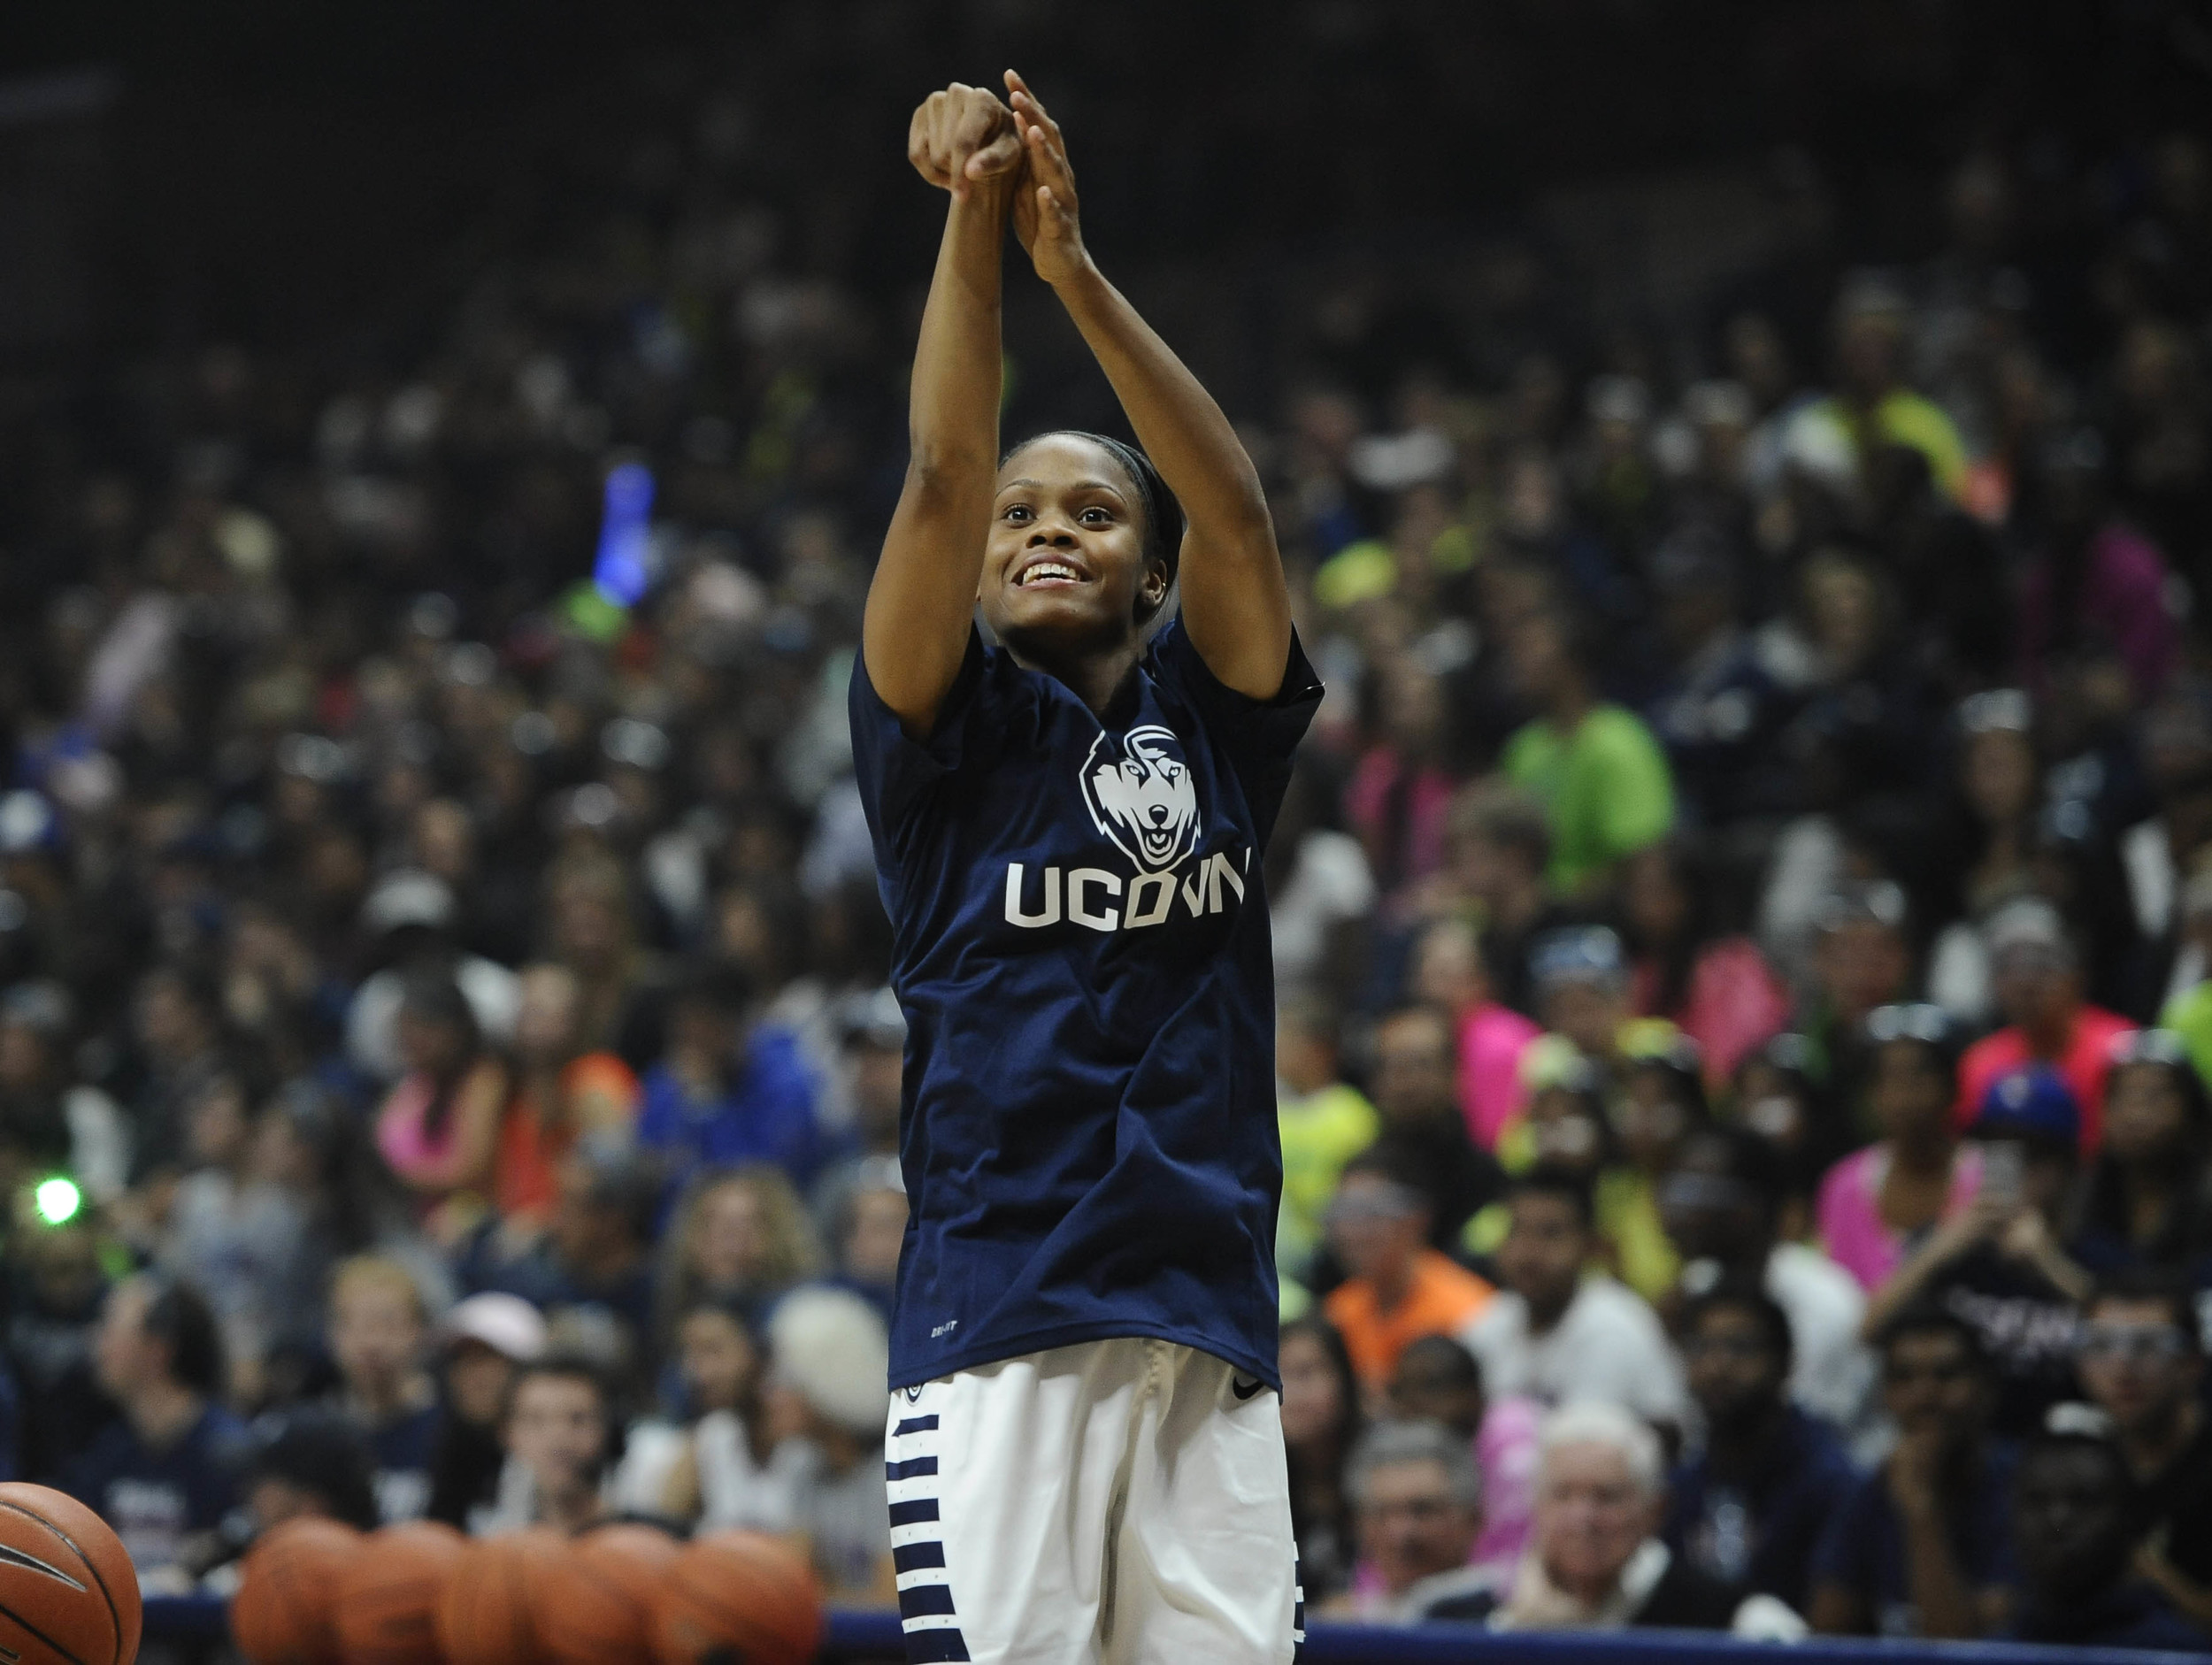 Connecticut's Moriah Jefferson competes in the three-point competition during the UConn men's and women's NCAA basketball teams' First Night event, Friday, Oct. 16, 2015, in Storrs, Conn. Jefferson won the competition. UConn opens their exhibition season Monday night. (AP)